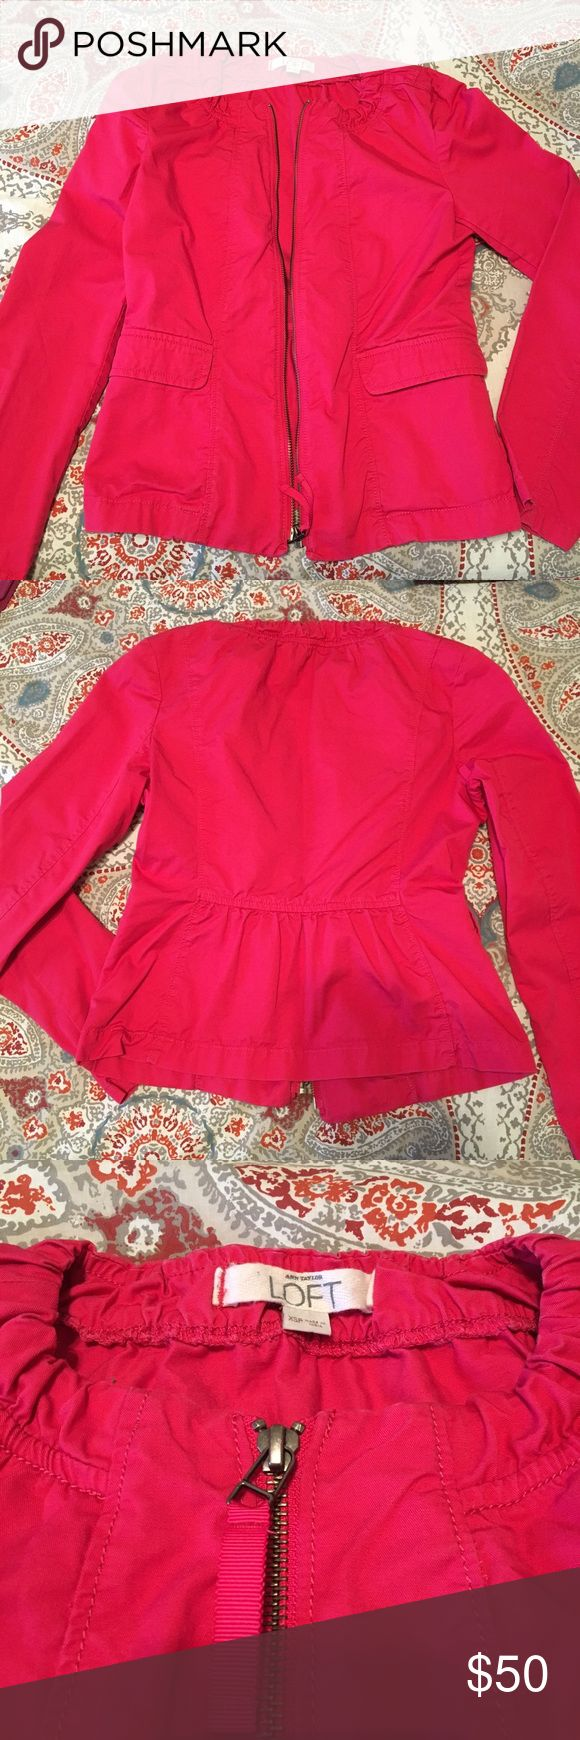 Loft XS Petite Zip Up Jacket - hot pink! Loft XS Petite zip up jacket in hot pink with tailored peplum detail in back and pockets! Lightweight and perfect for Spring and Summer layering. Worn and washed once. Smoke free and pet free home. LOFT Jackets & Coats